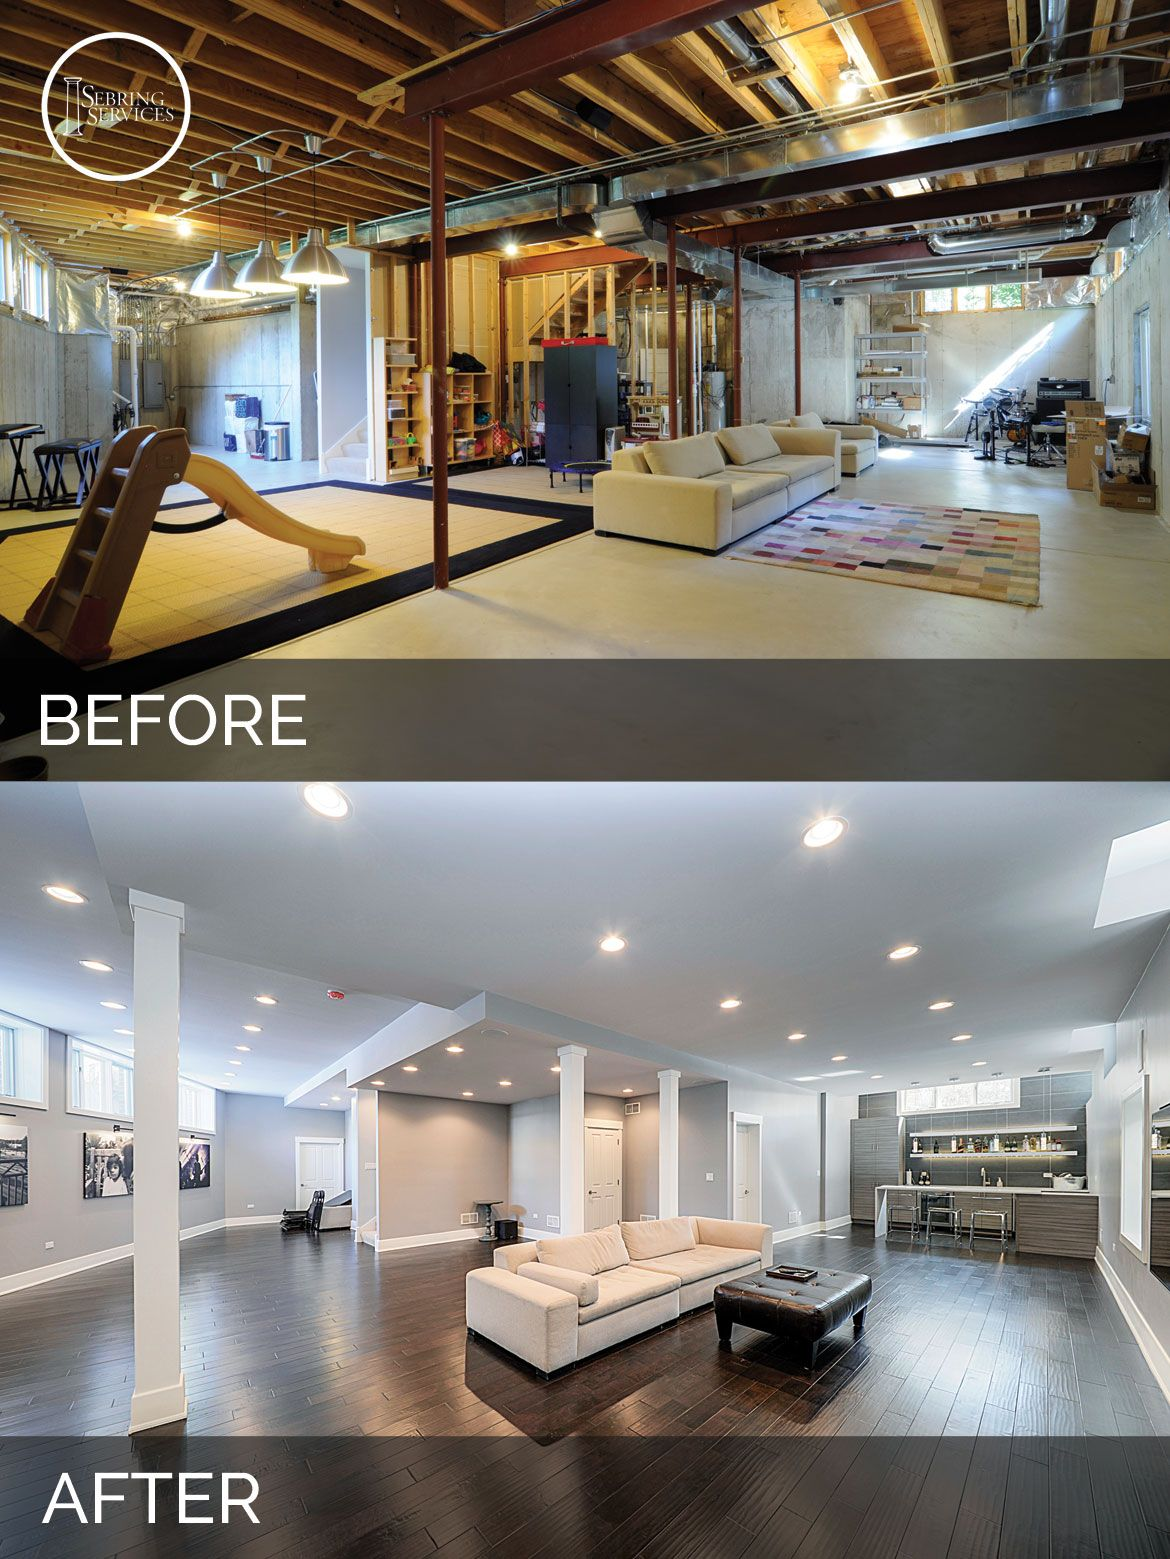 Bon Before And After Basement Remodeling   Sebring Services